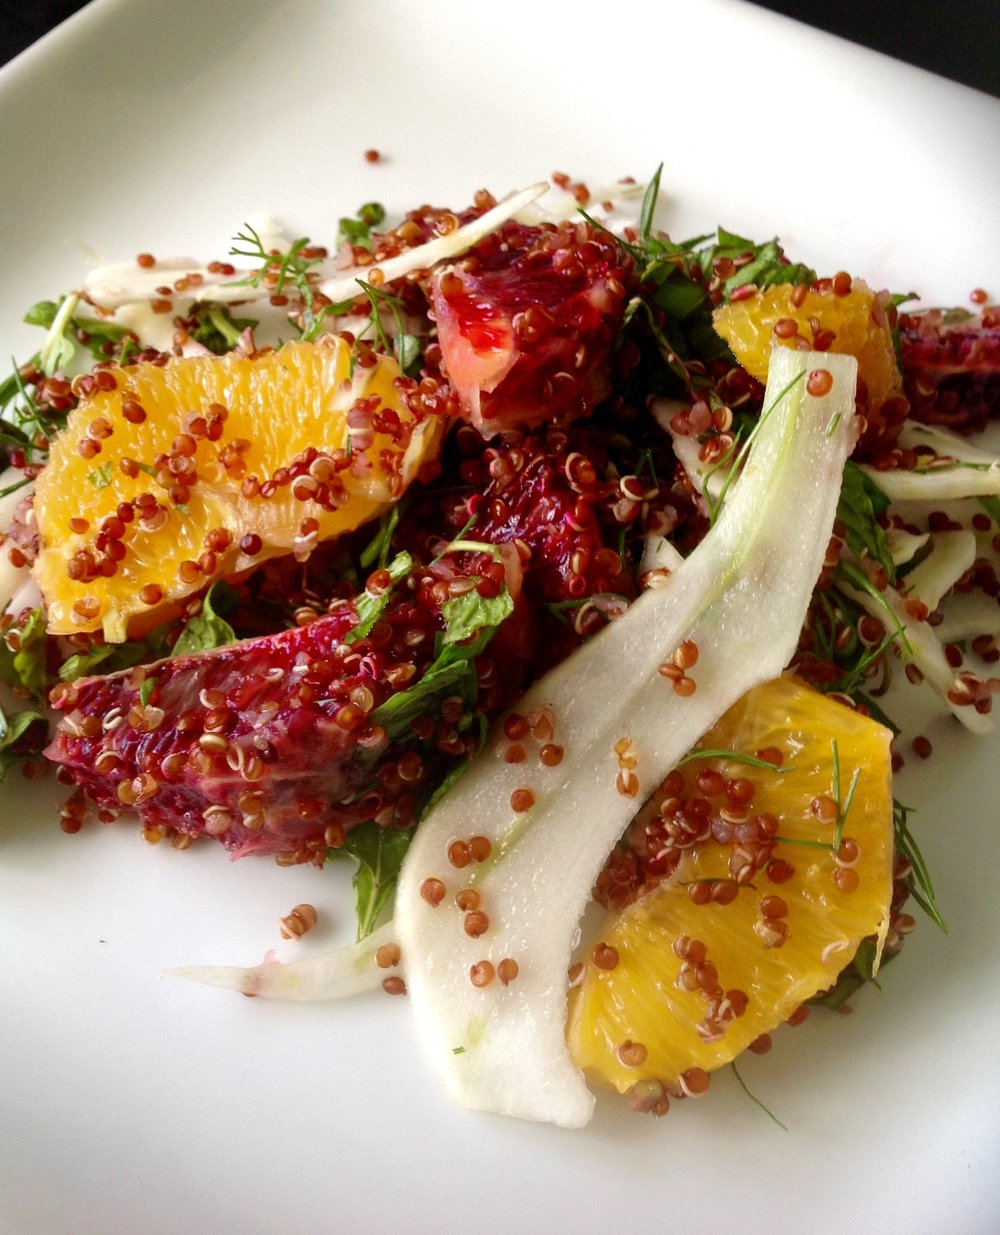 Red Quinoa Fennel Citrus Salad - Healthy, Gluten-Free, Whole Grain, Organic, Heirloom, Oil-Free, Plant-Based, Vegan